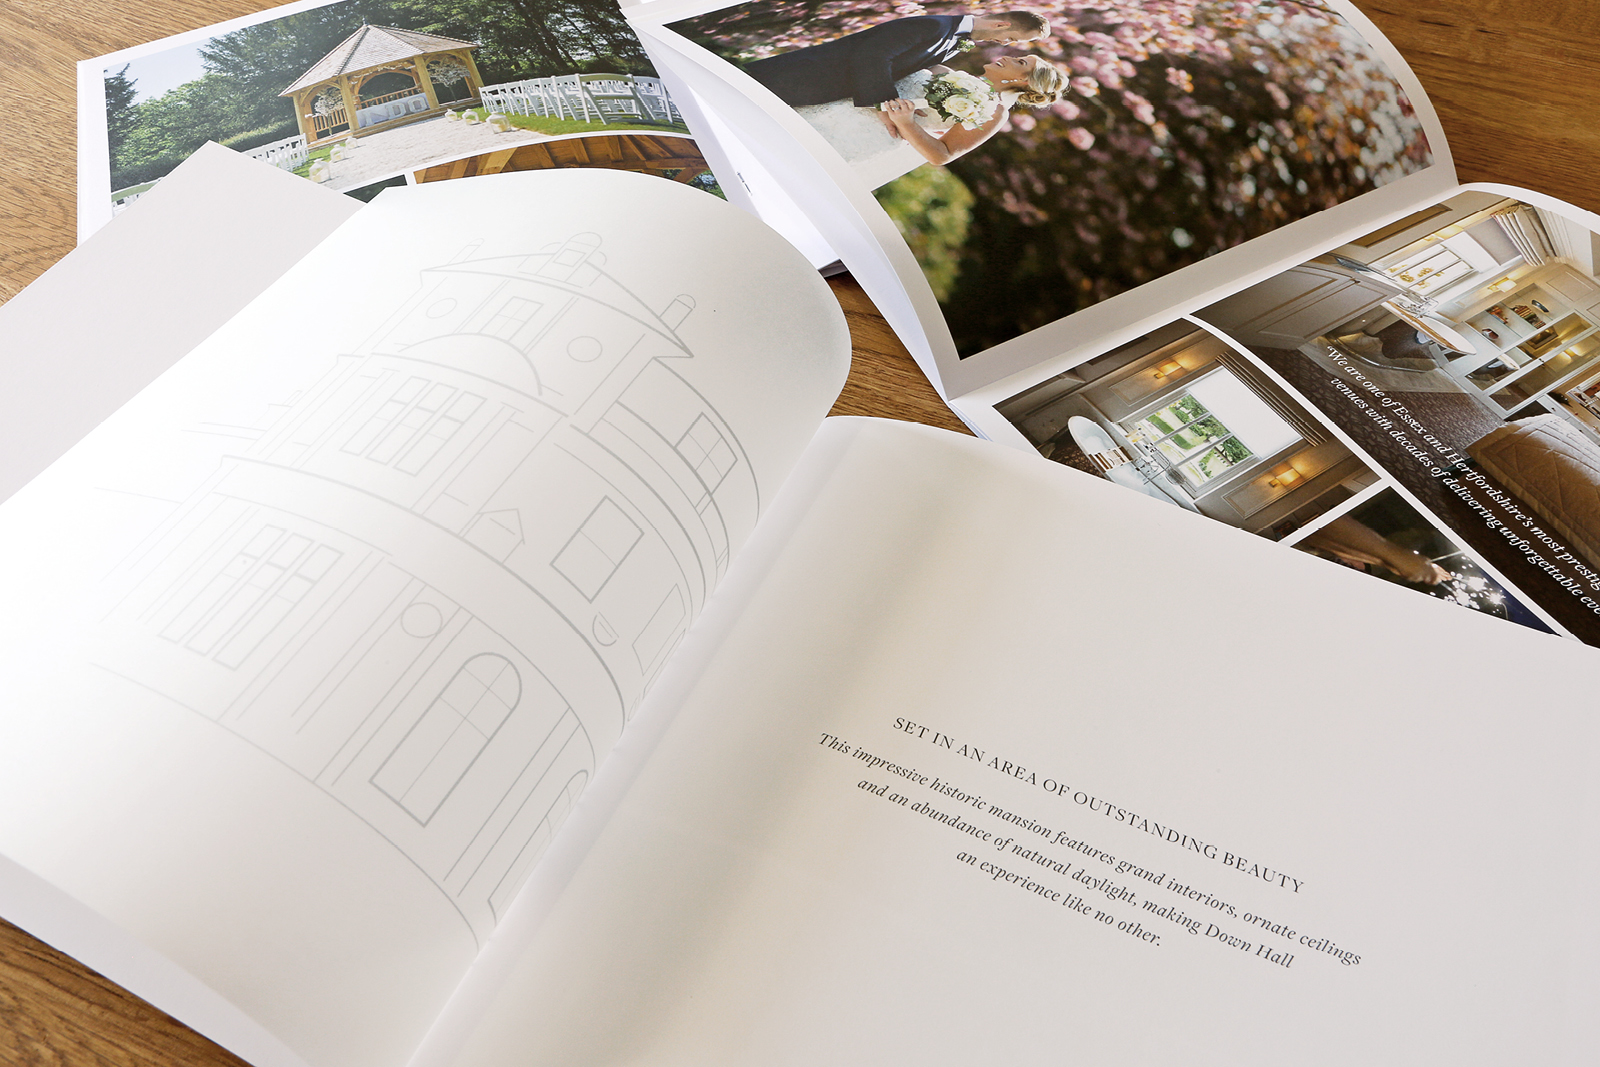 Wedding brochure graphic design & production for Down Hall, luxury country house hotel & spa located on the Hertfordshire and Essex border in Hatfield Heath.